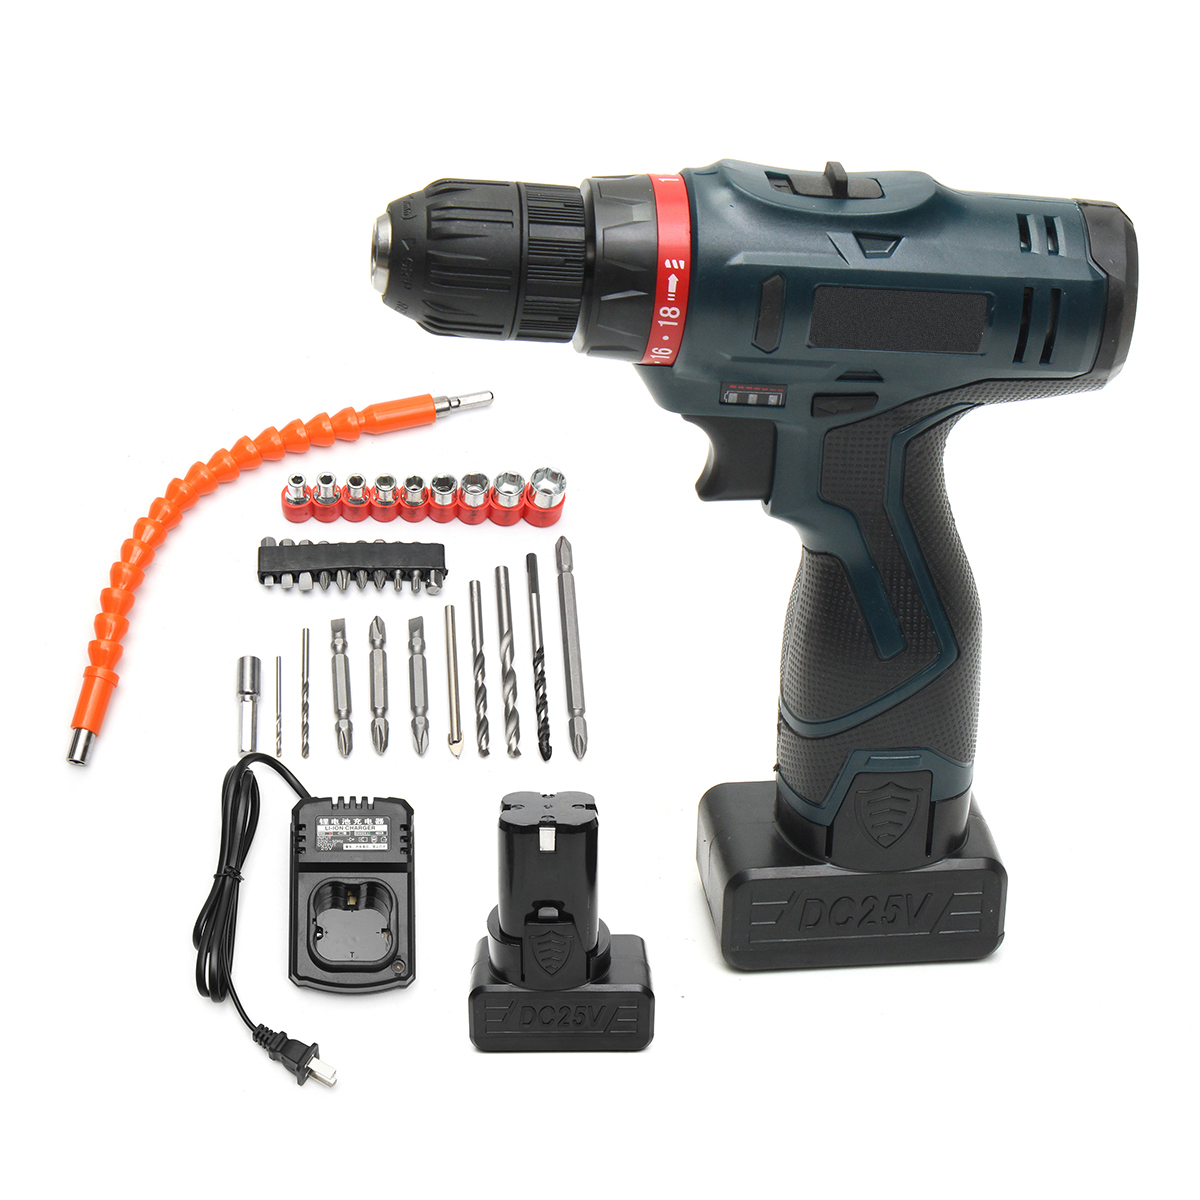 24V Electric Screwdriver Power Drill Brushess Driver Dual Speed Impact 2 Lithium-ion Battery